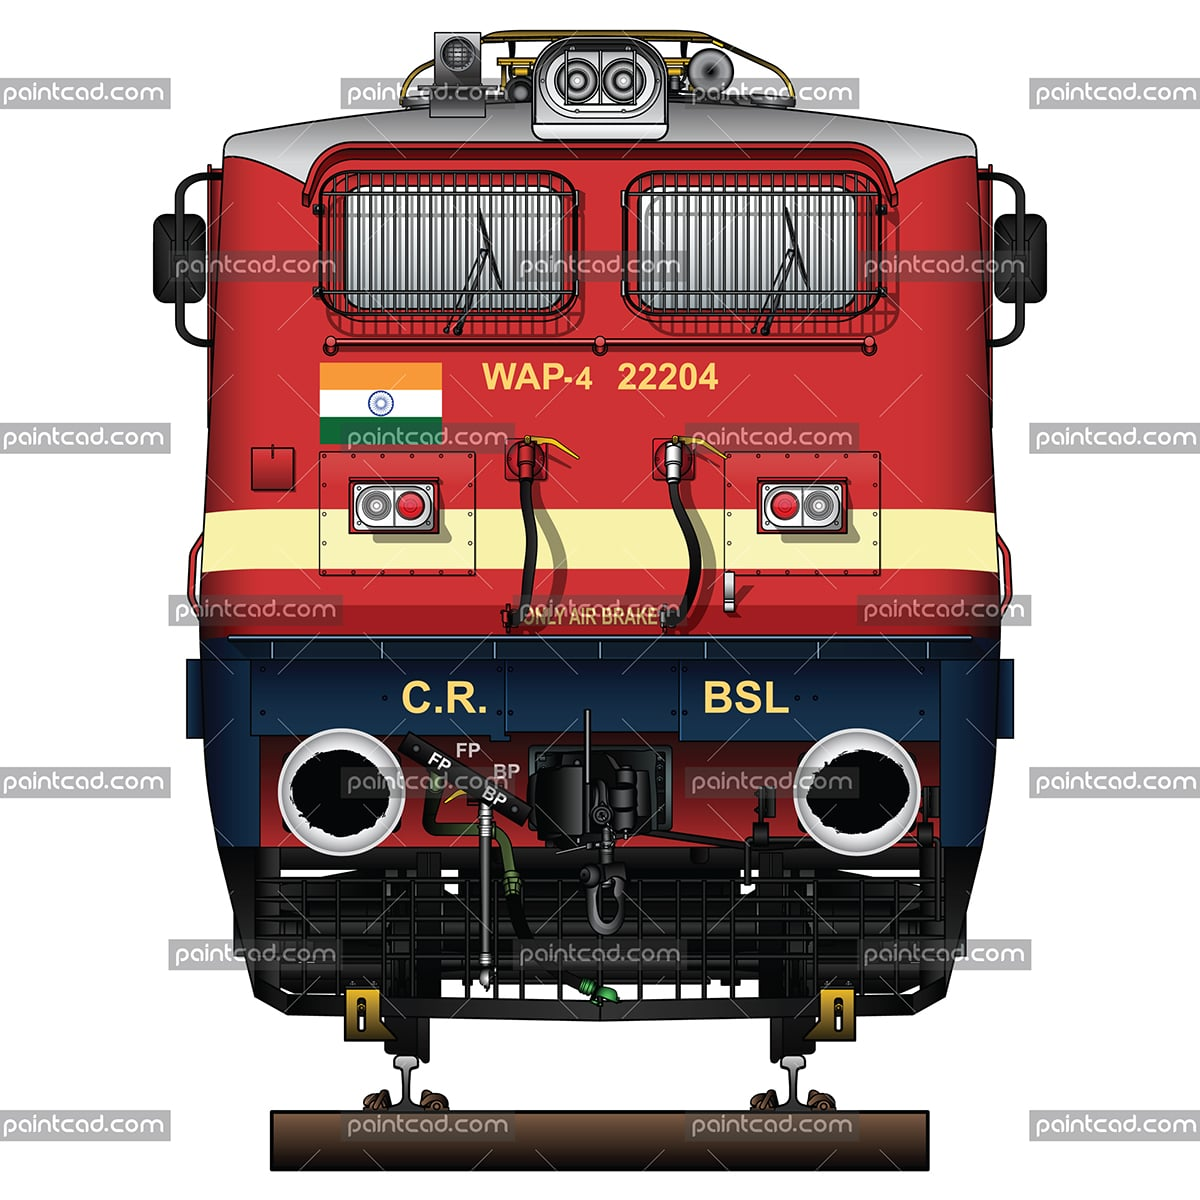 Indian WAP-4 used by Electric Locomotive Shed Bhusawal - BSL - vector illustration